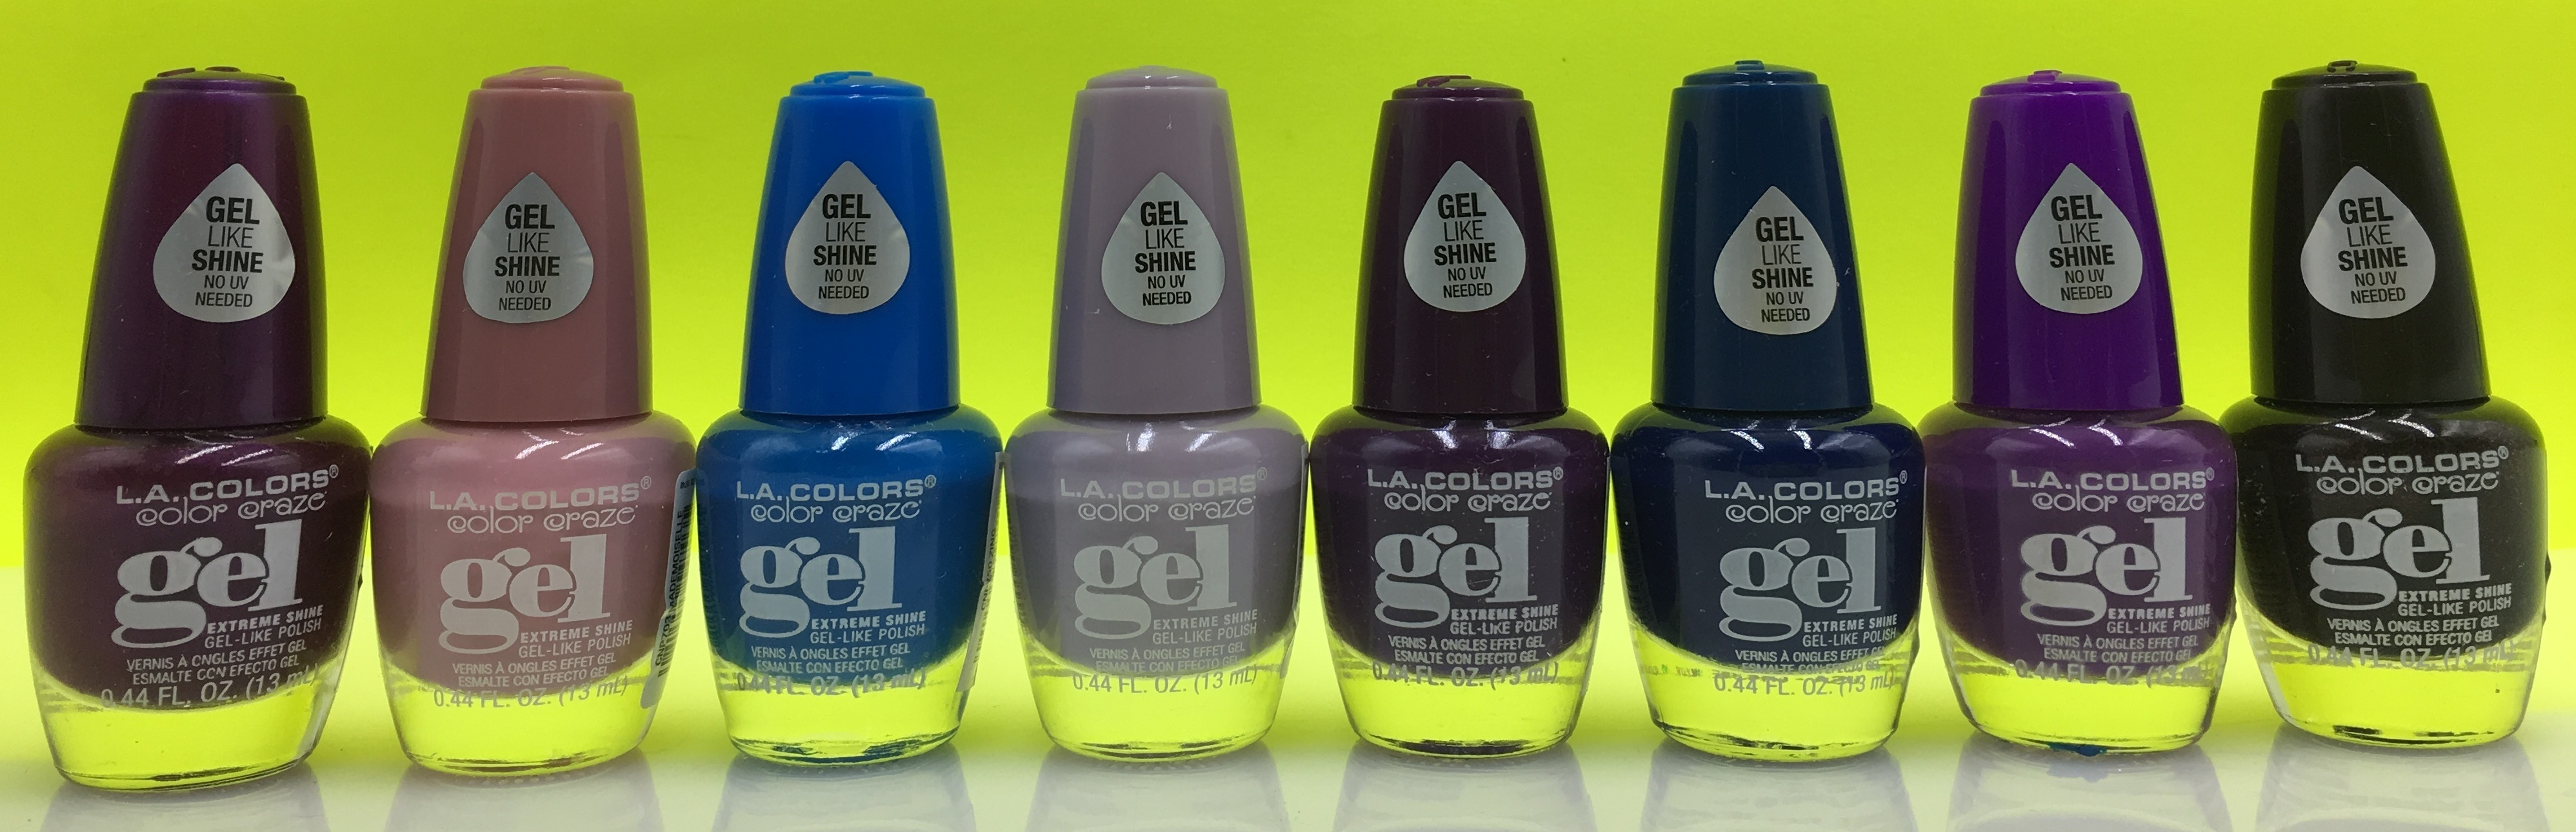 Beauty to Go » Esmalte Gel Extreme Shine L.A. Colors